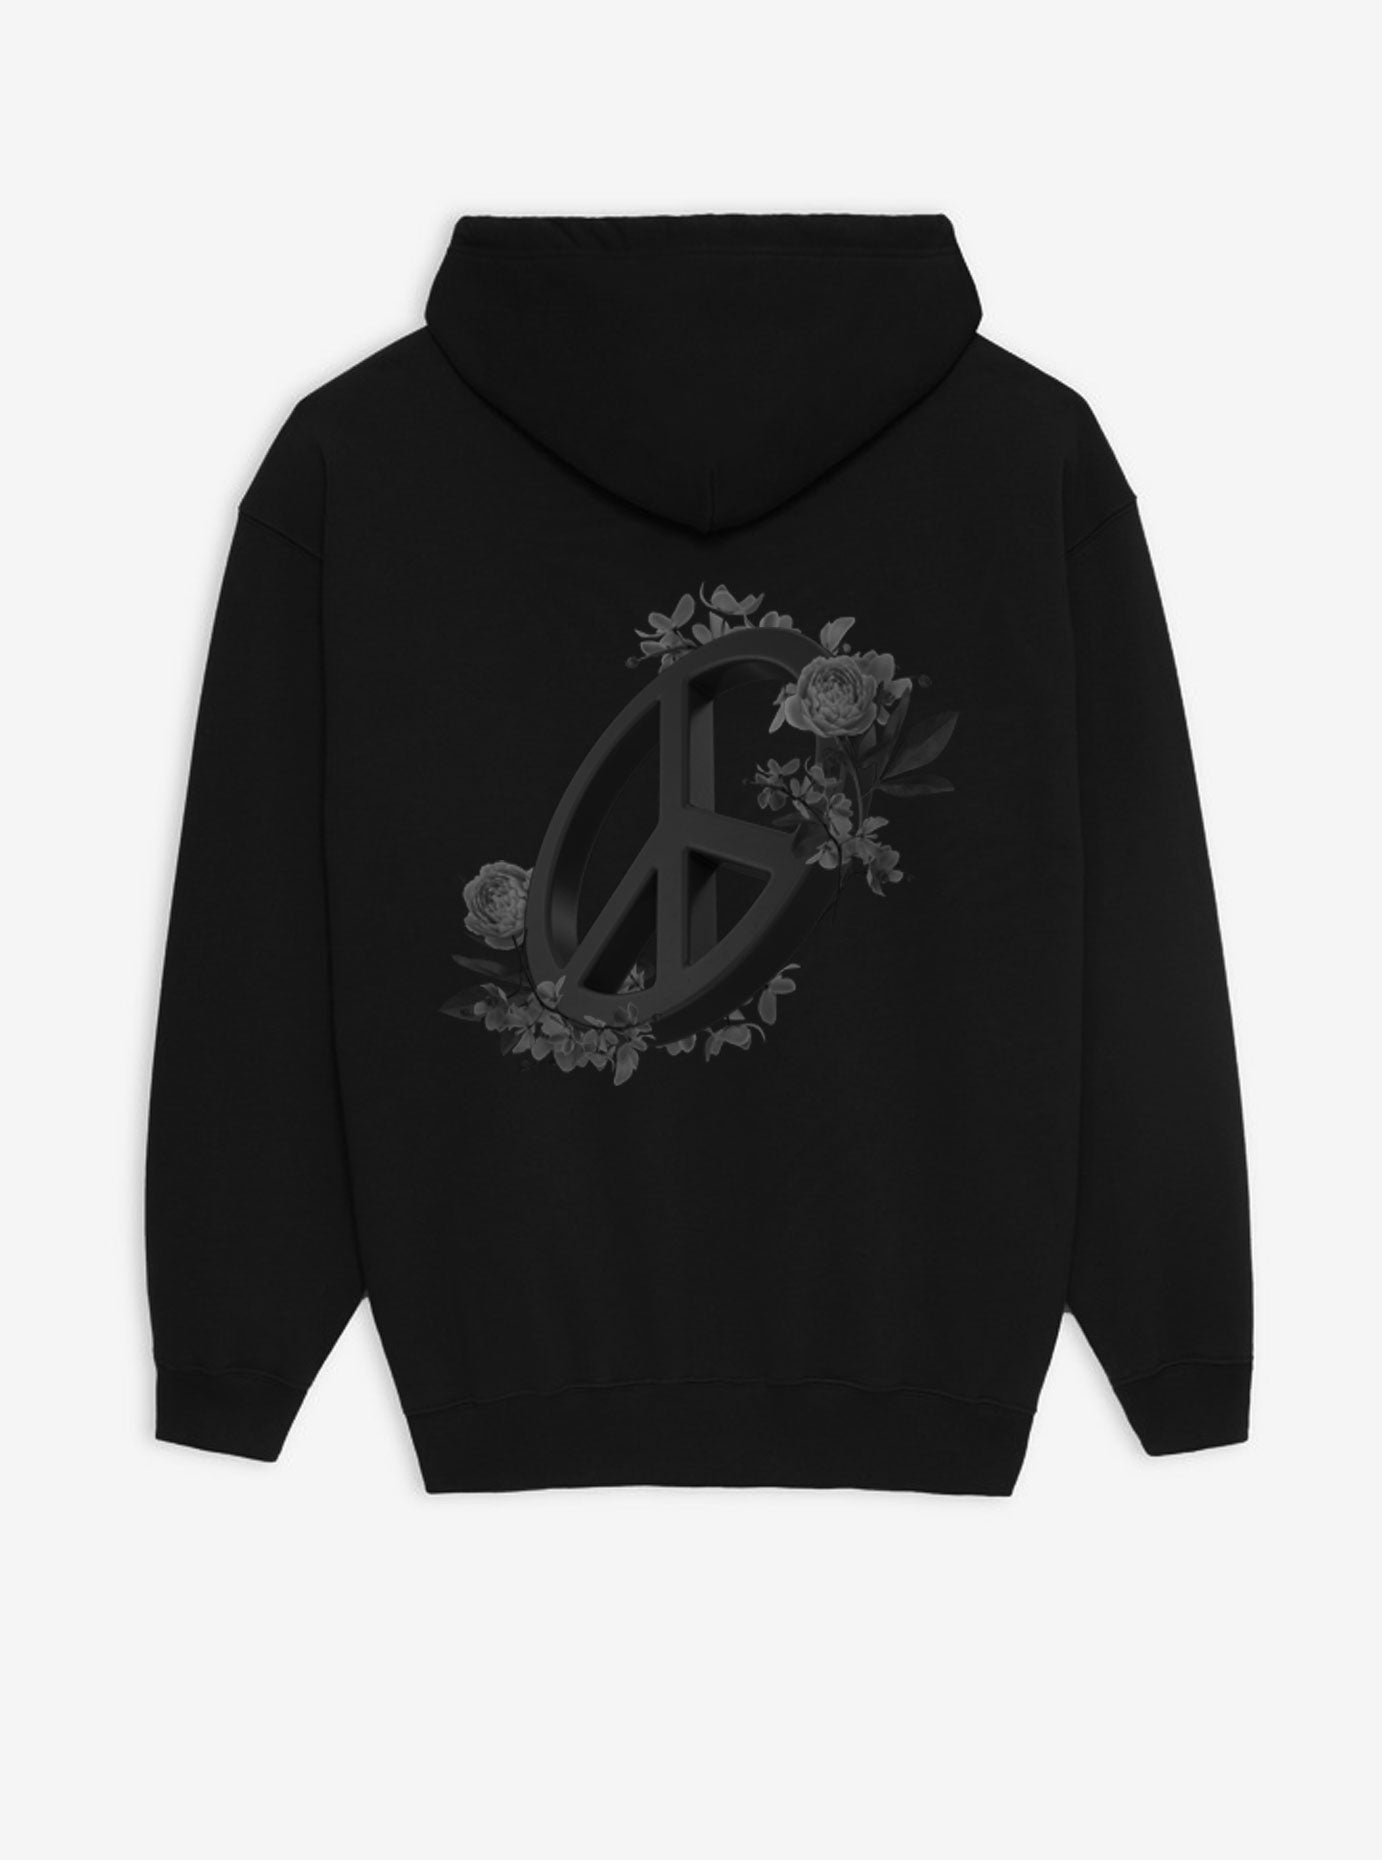 PEACE HOODIE - BLACK - SOLD OUT - blupstore